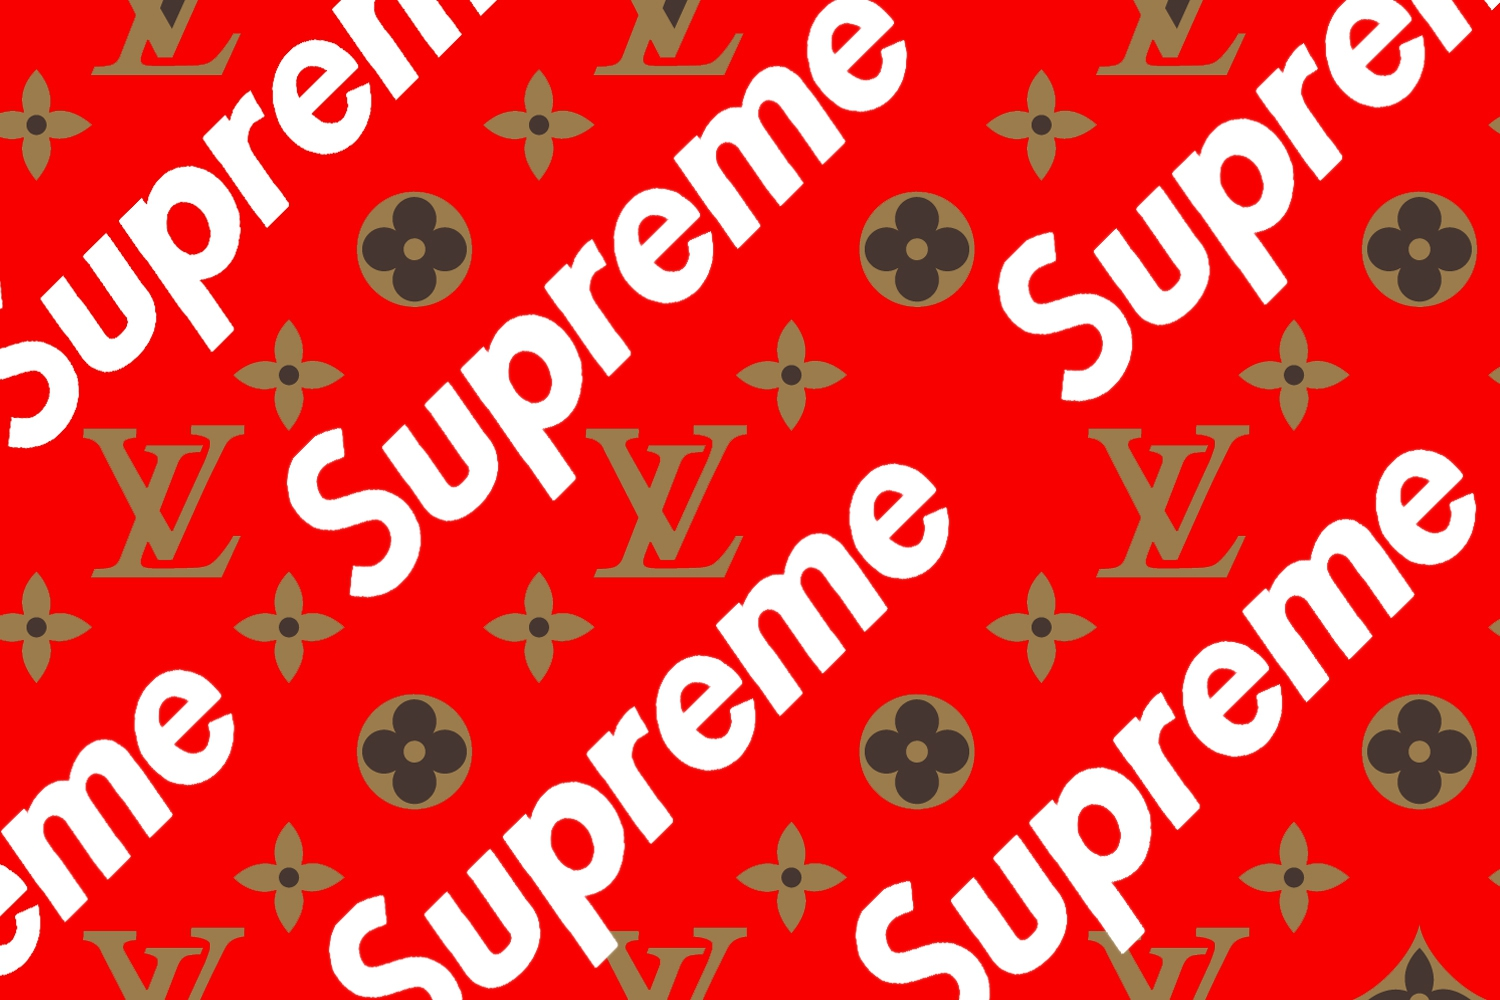 Louis Vuitton Supreme Live Wallpaper